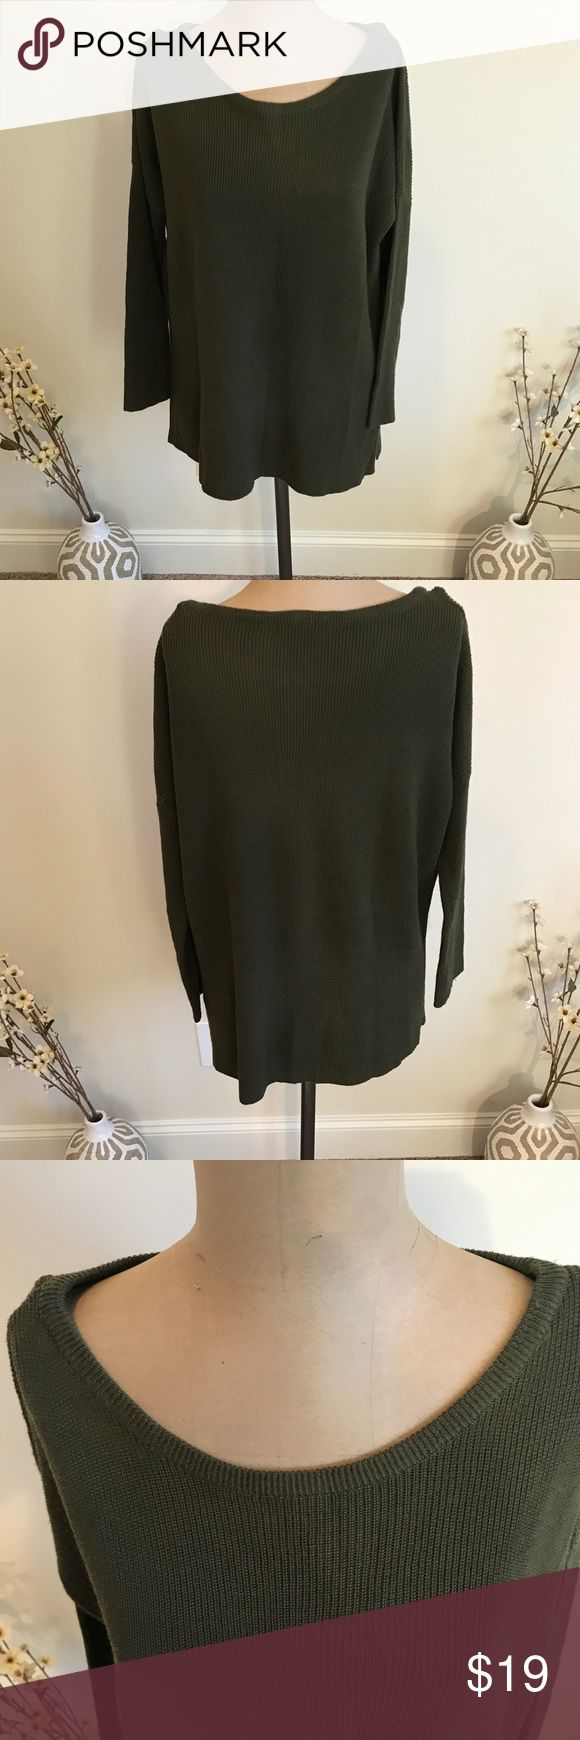 Zara Double Split Knit Sweater Double Split Knit Sweater by Zara. Olive Green. Double side split design. Comfy fit for the cooler temperatures. Used condition. Small hole in the armpit of the Sweater. See pictures. Zara Sweaters